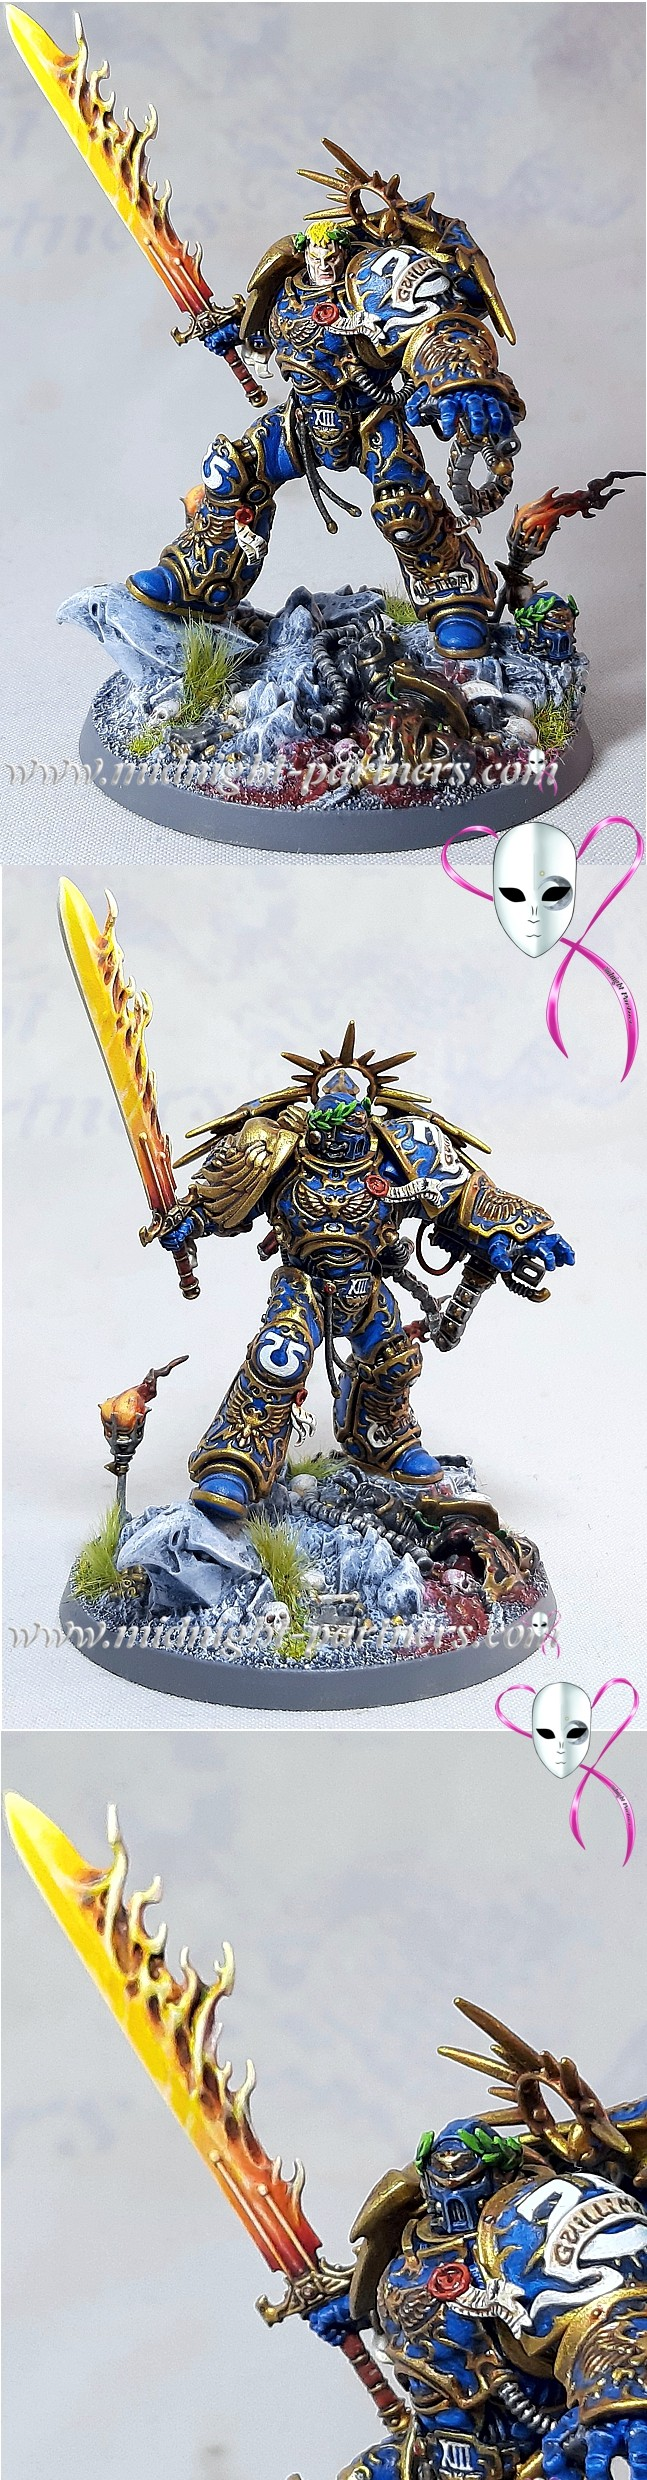 Roboute Gulliman Primarch of the Ultramarines Chapter and Lord Regent of the Imperium of Men.